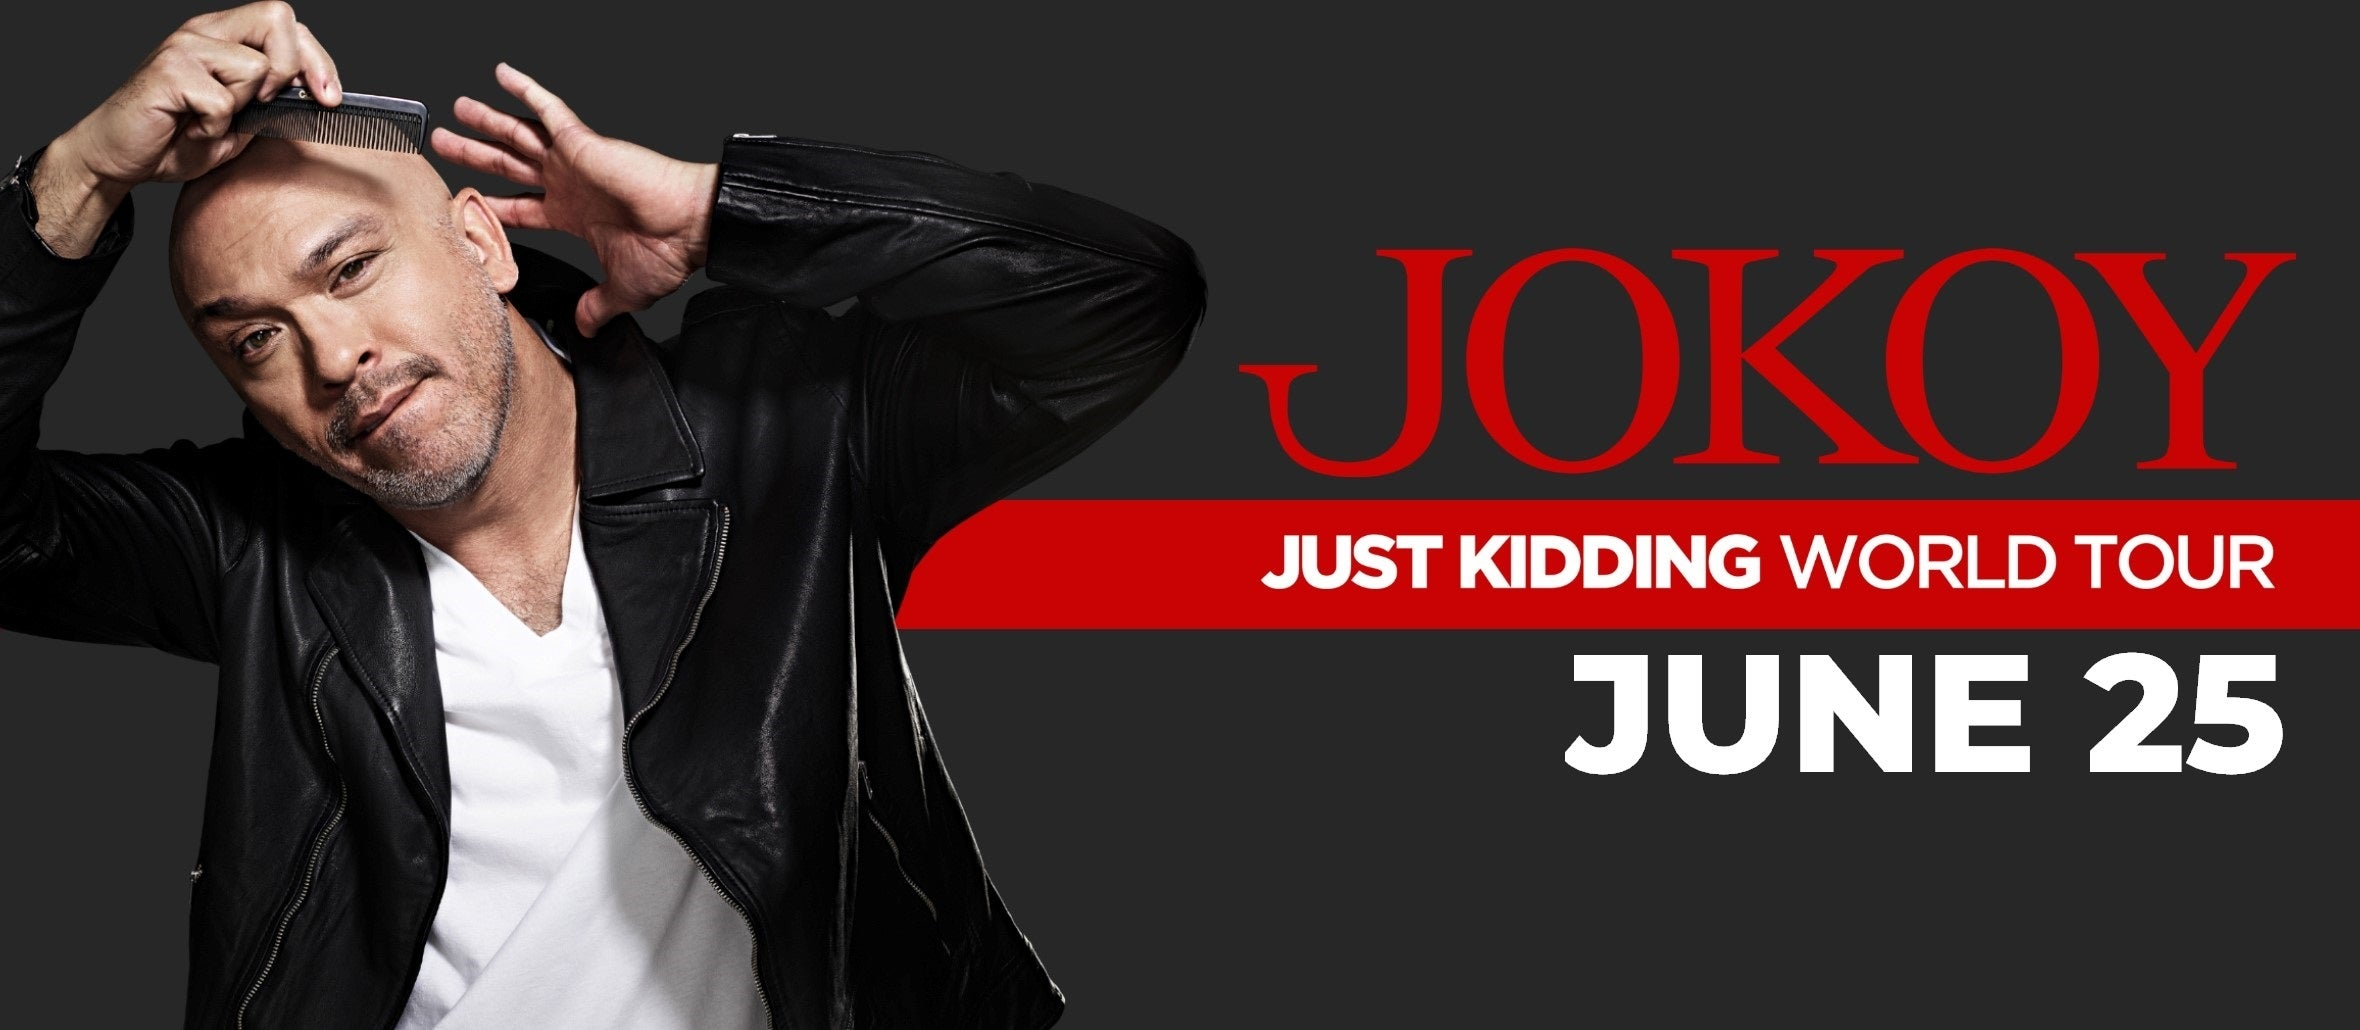 Jo Koy: Just Kidding World Tour